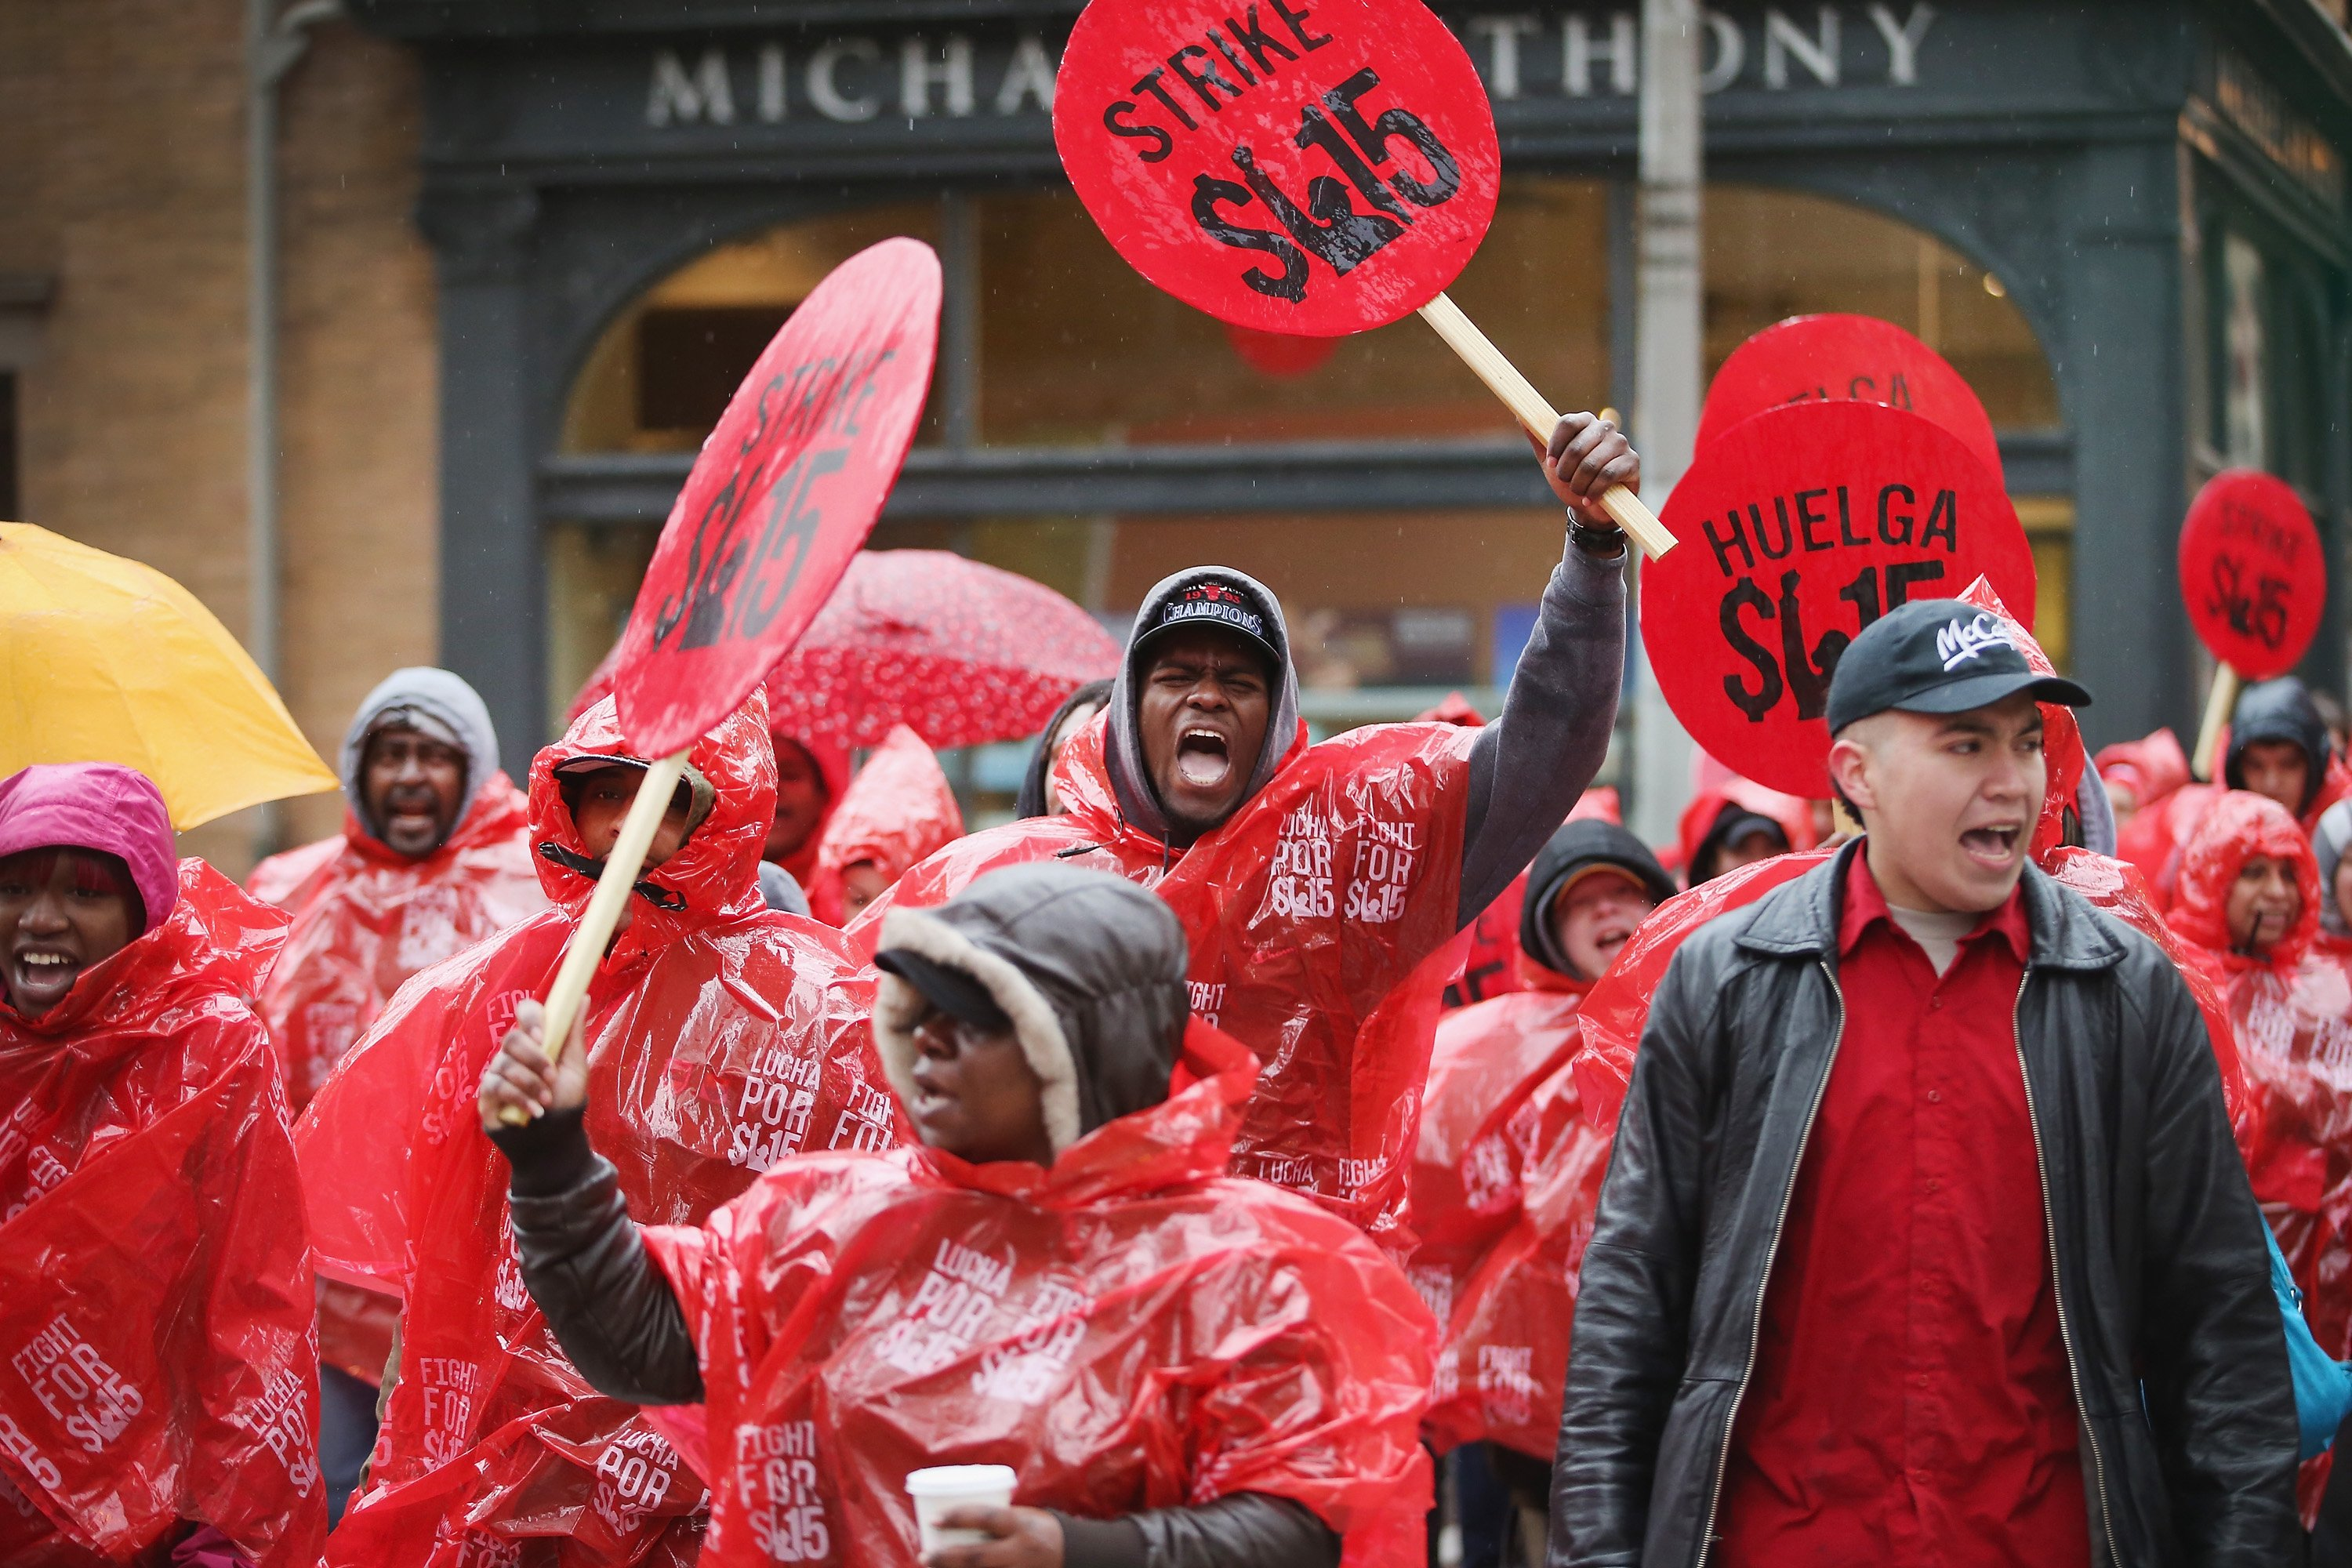 <b>Chicago:</b> Fast food workers and activists demonstrate outside McDonald's downtown flagship restaurant on May 15, 2014.